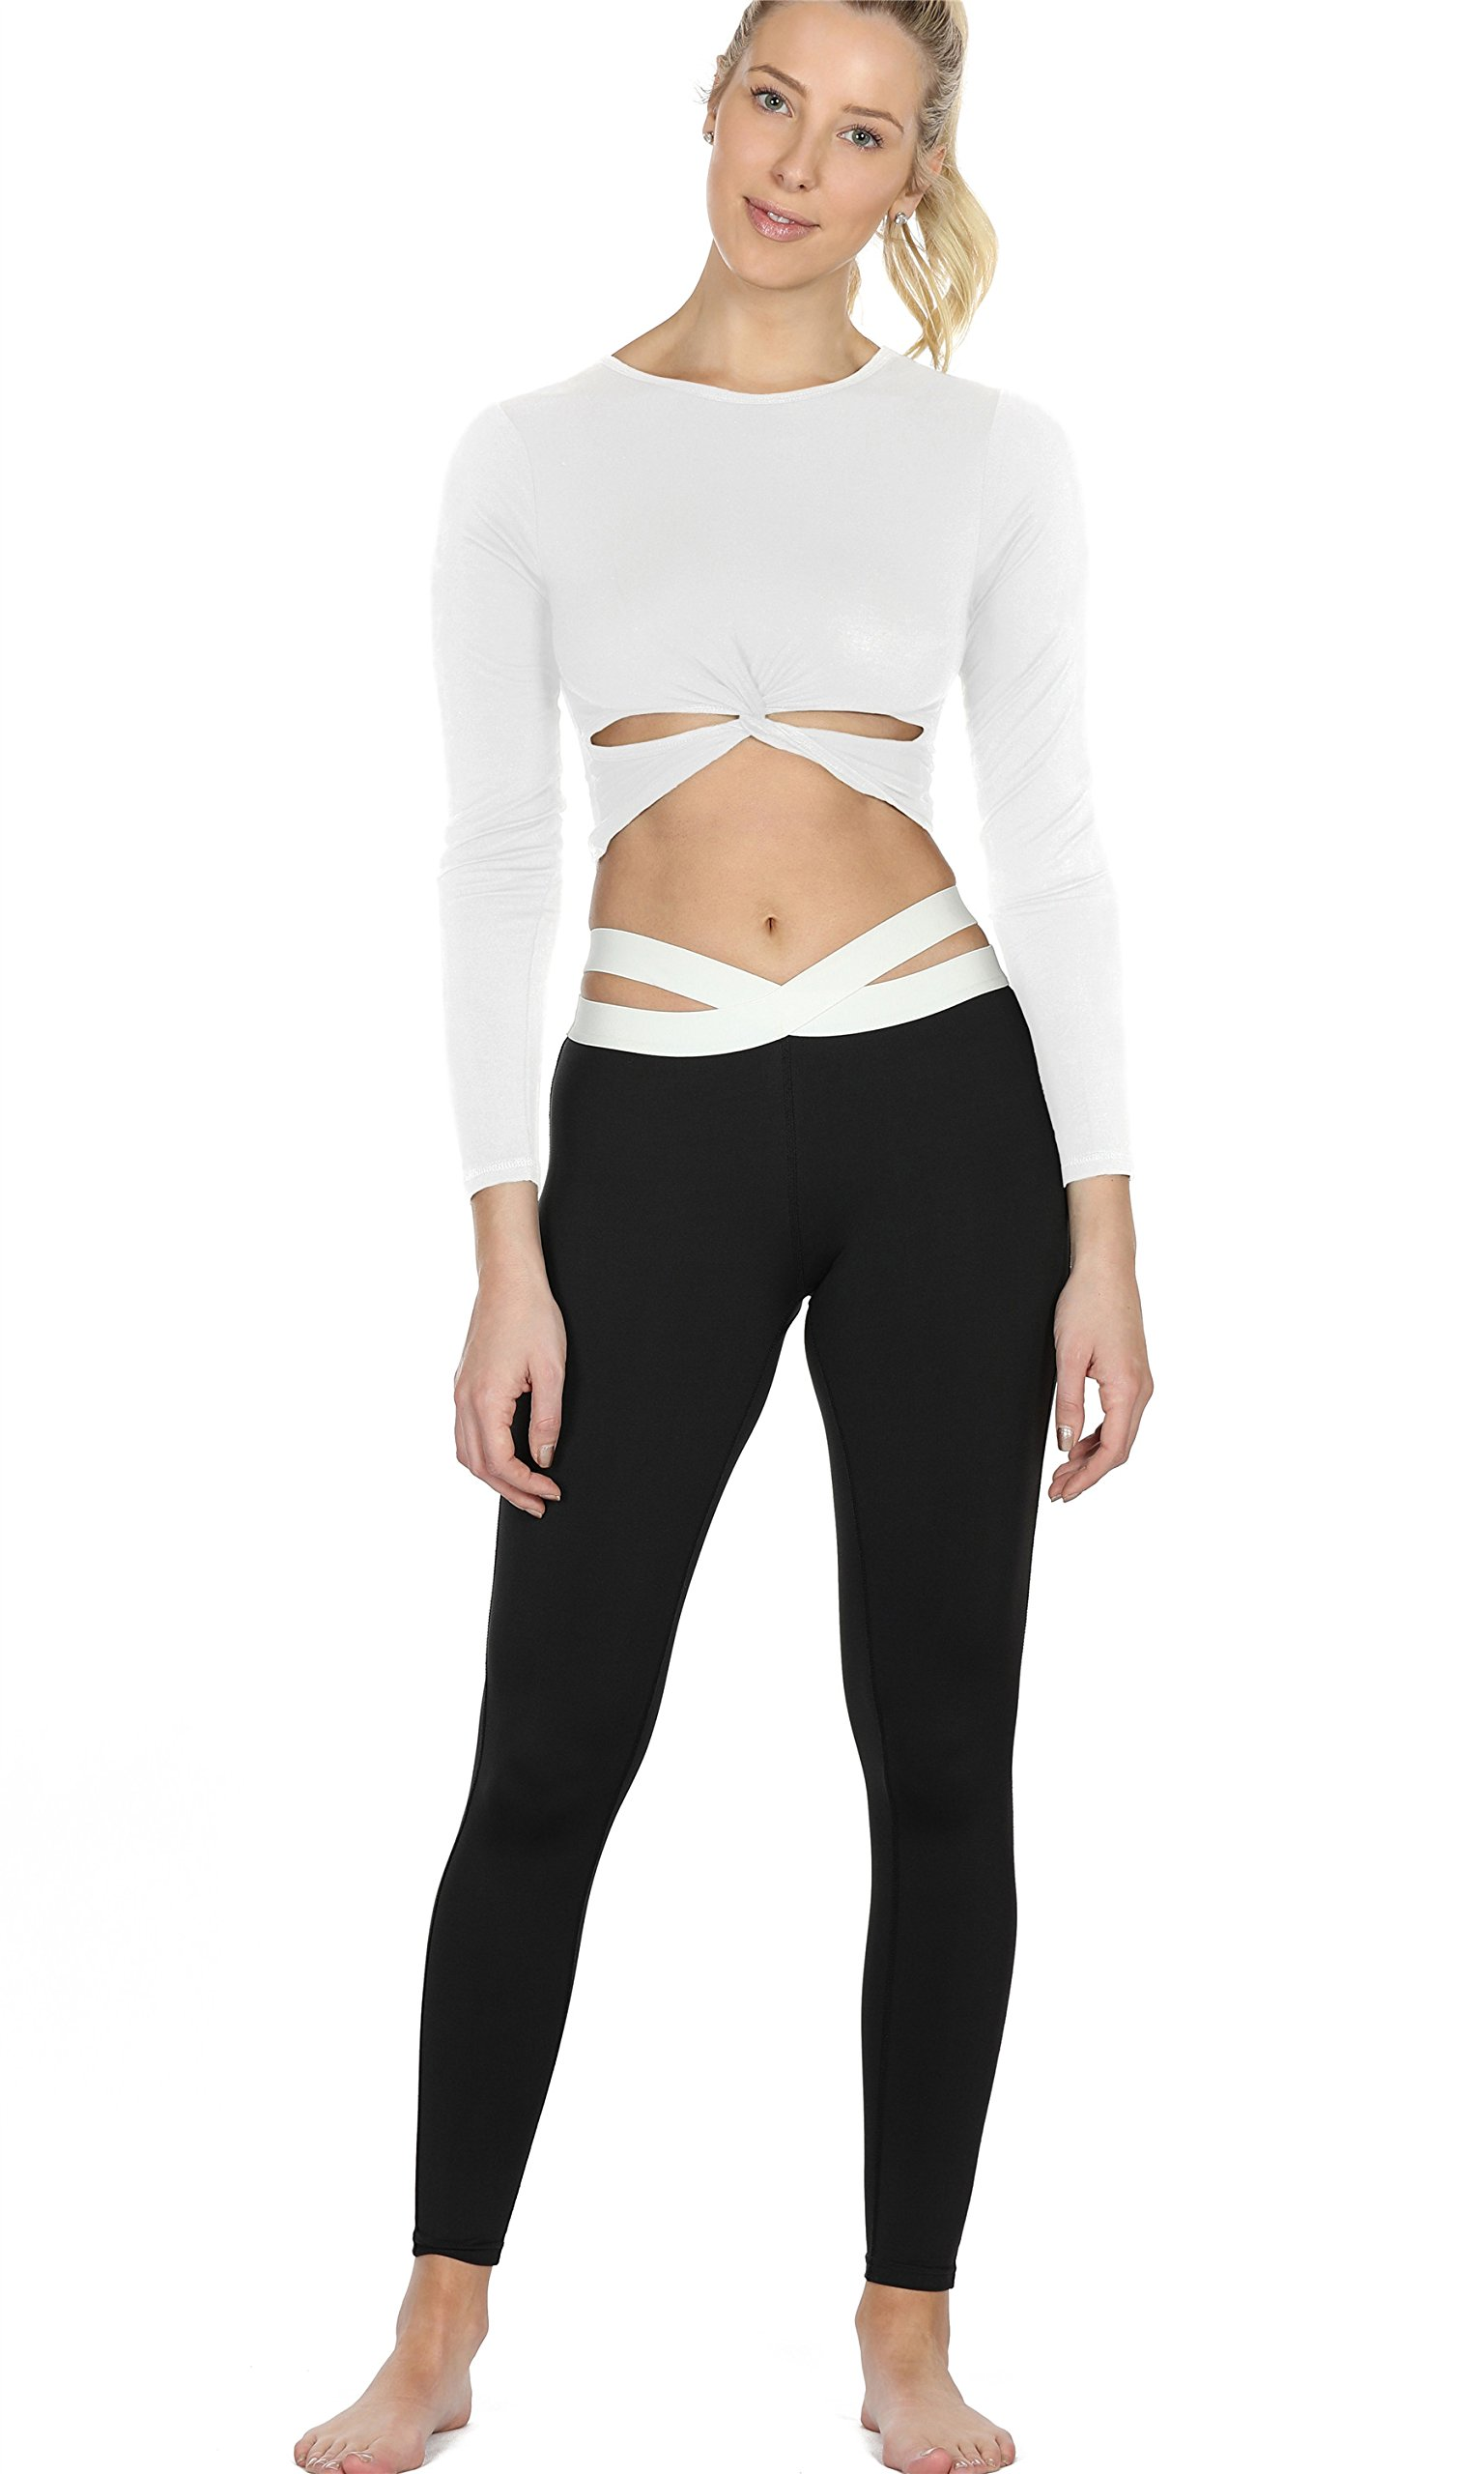 icyzone Long Sleeve Crop Tops for Women - Activewear Workout Yoga Gym Lounge T Shirts (White, XL)